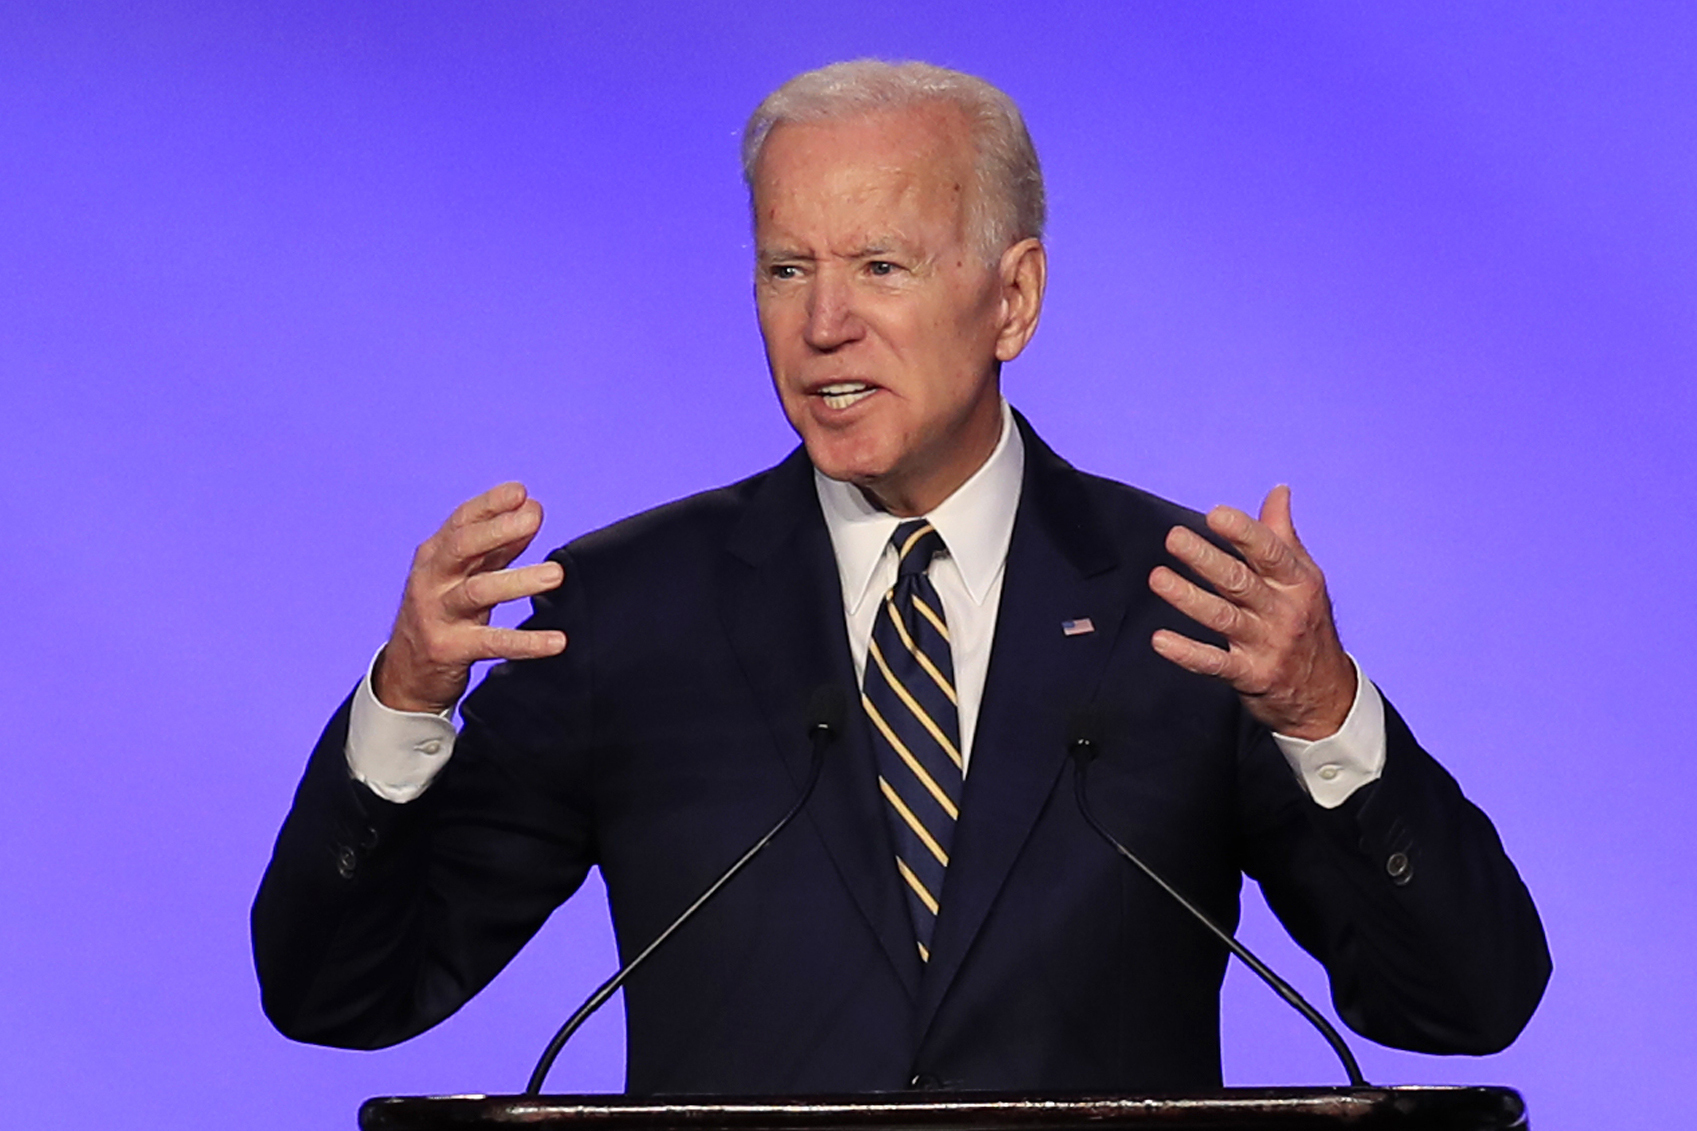 Election_2020_Joe_Biden_51589-159532.jpg93629490